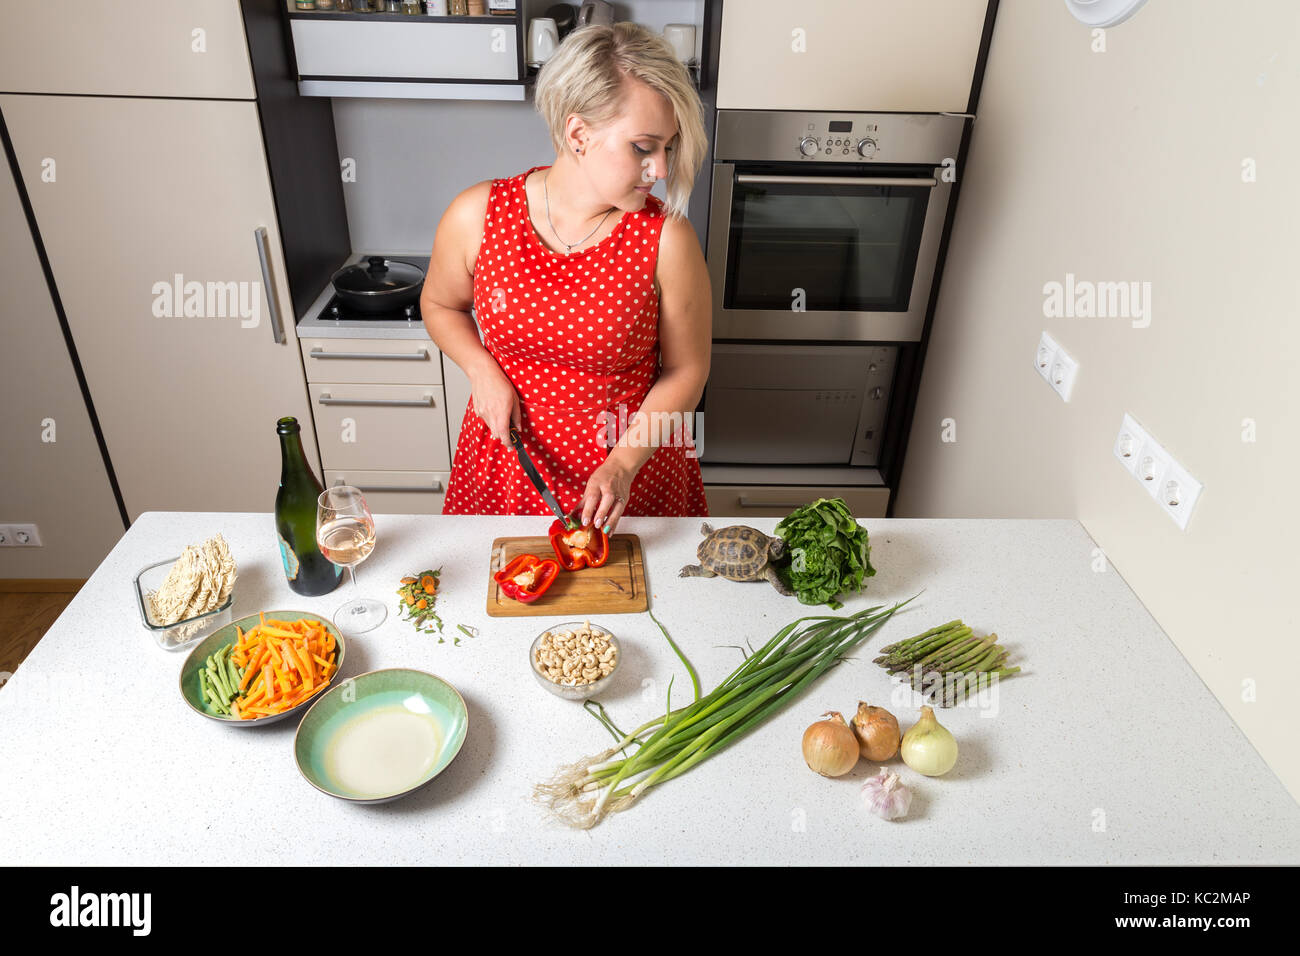 Woman cutting paprika and looking over shoulder of tortoise eating salad - Stock Image